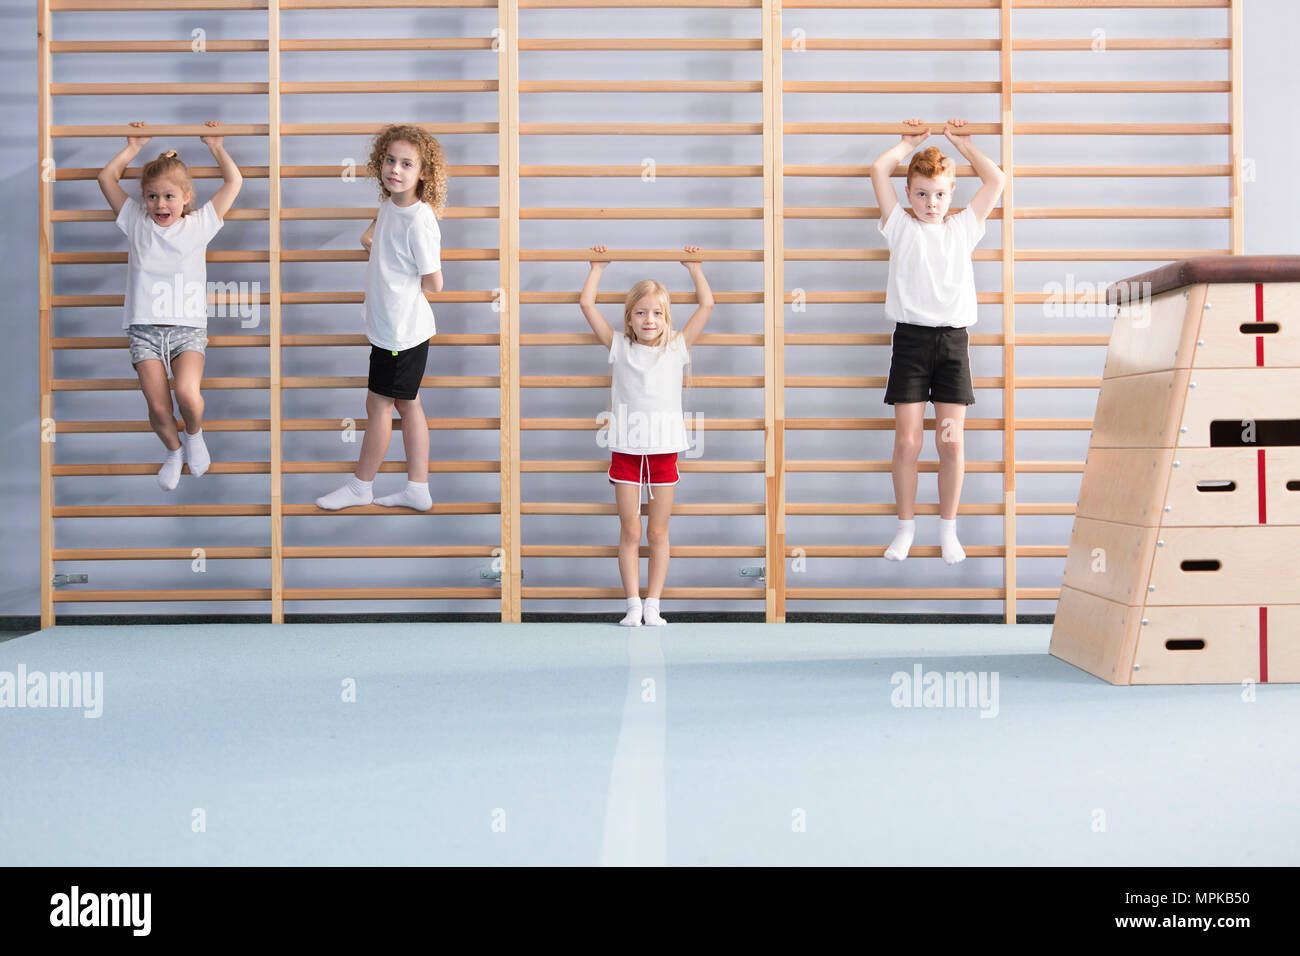 Young, active school boys and girls standing and hanging from wall bars, warming up for physical education athletics class - Stock Image